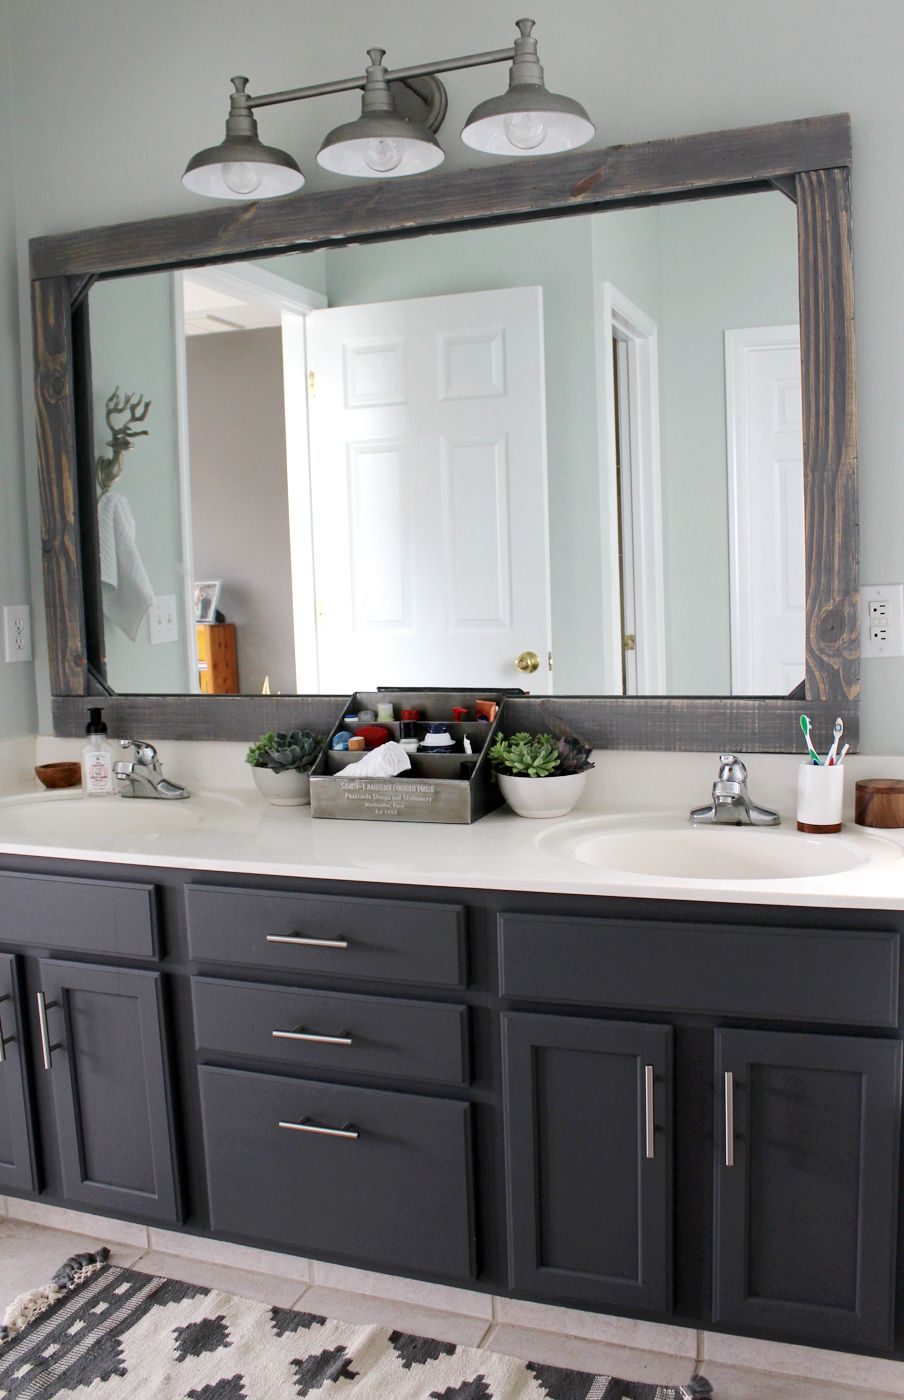 How To Frame A Mirror With Wood Bathroom Mirror Design